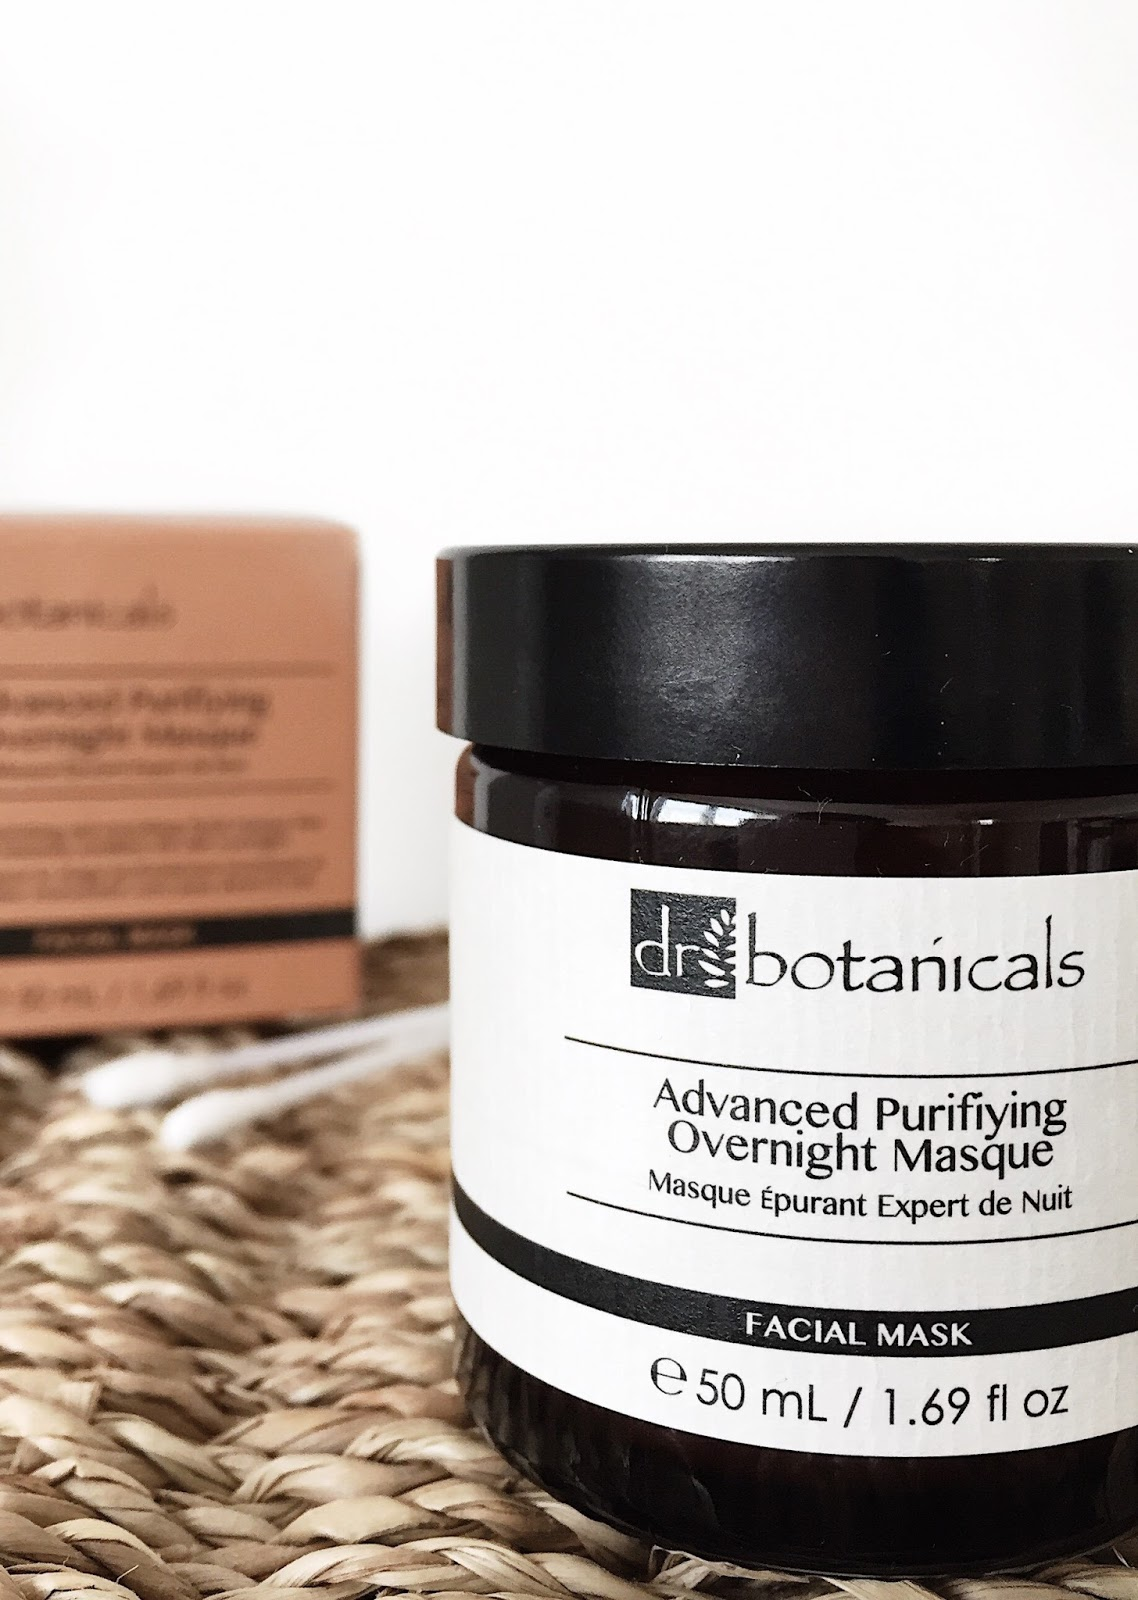 DR. BOTANICALS ADVANCED PURIFYING OVERNIGHT MASQUE